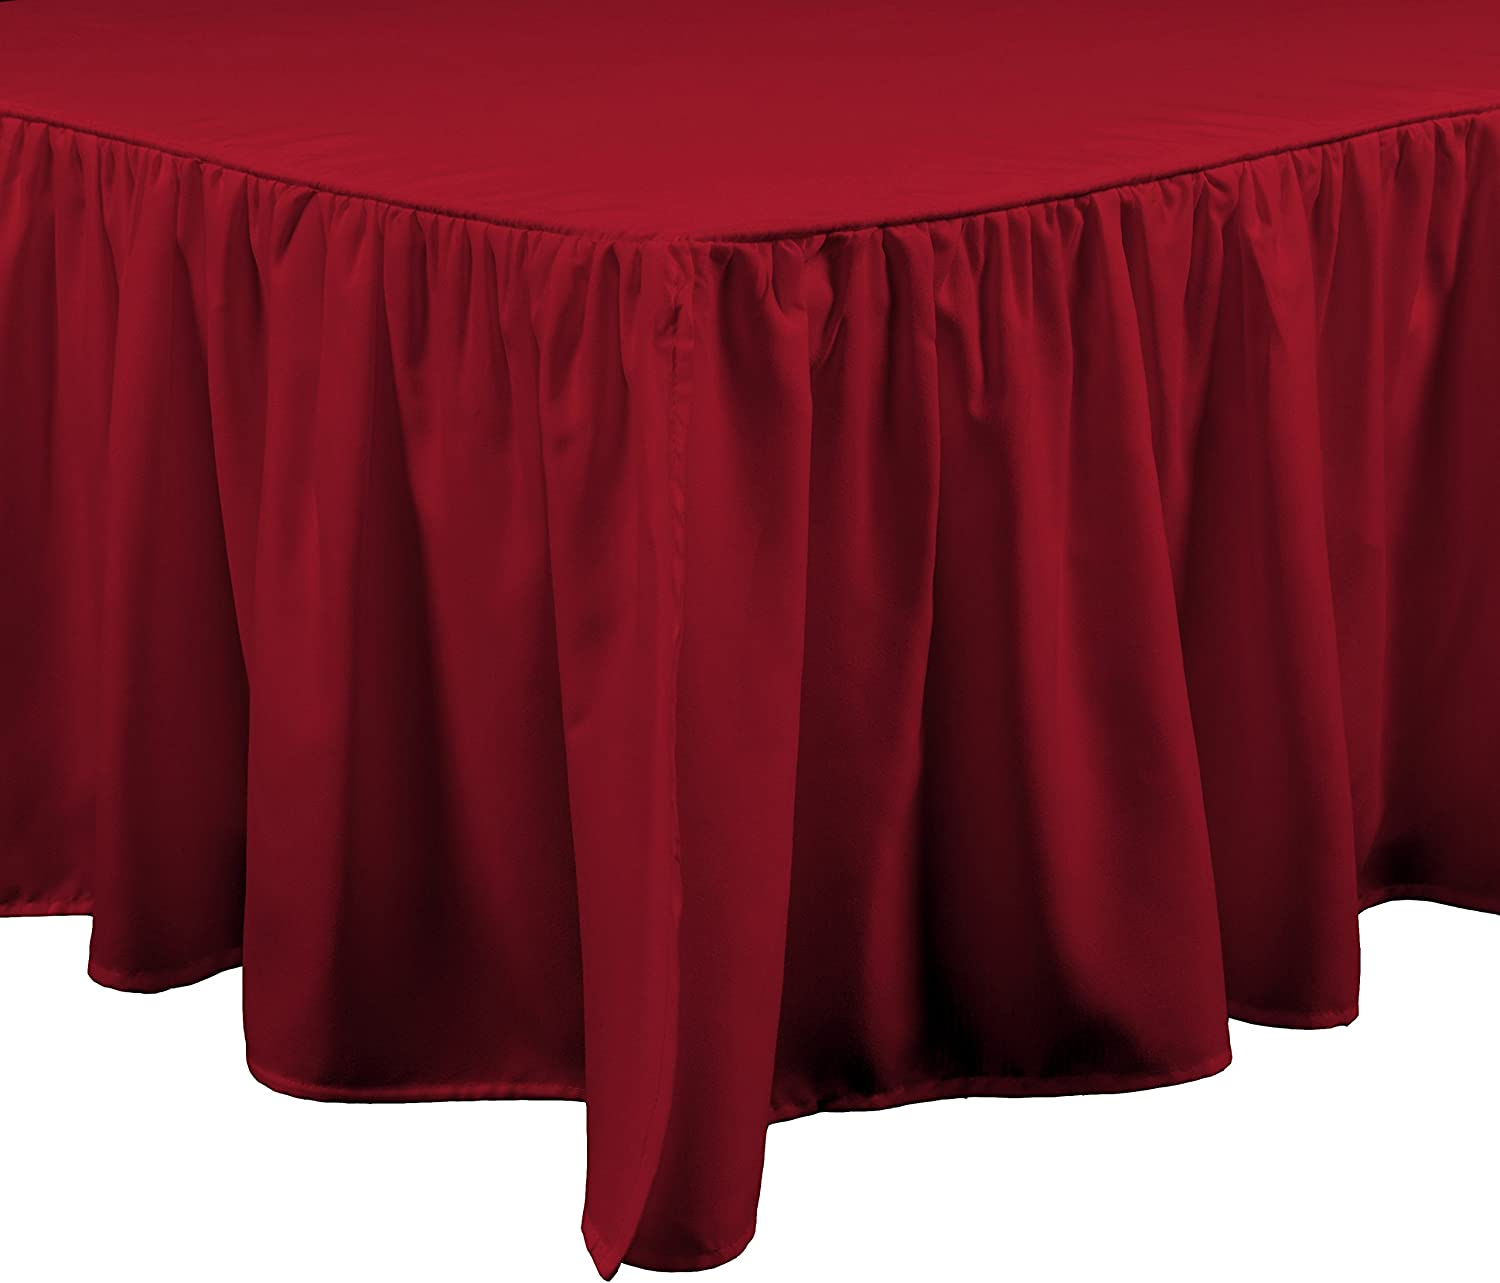 Brielle Essentials Bedskirt, Full, Red